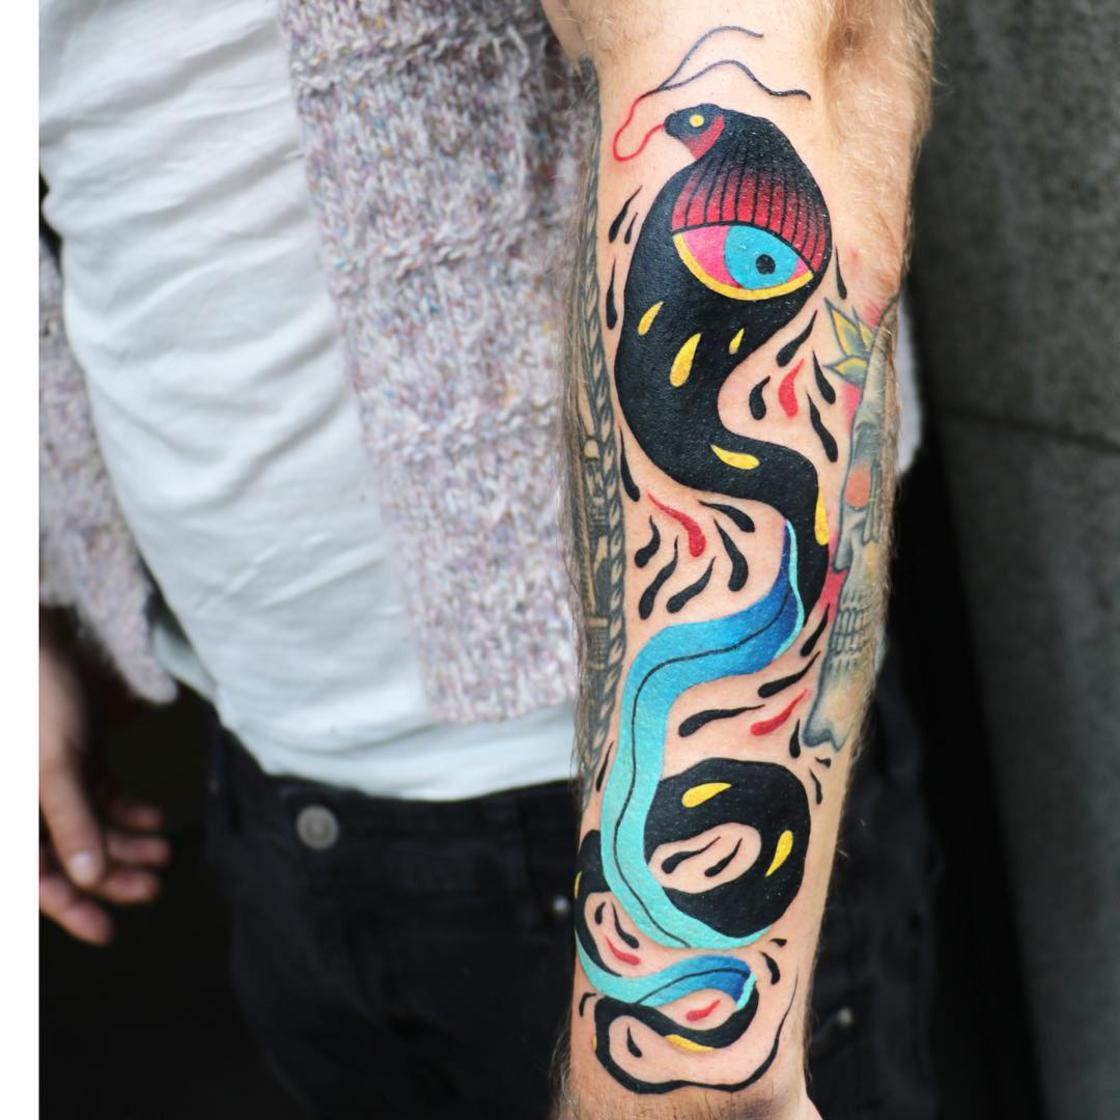 Glitches and Colors - The conceptual tattoos of Aleksy Marcinow